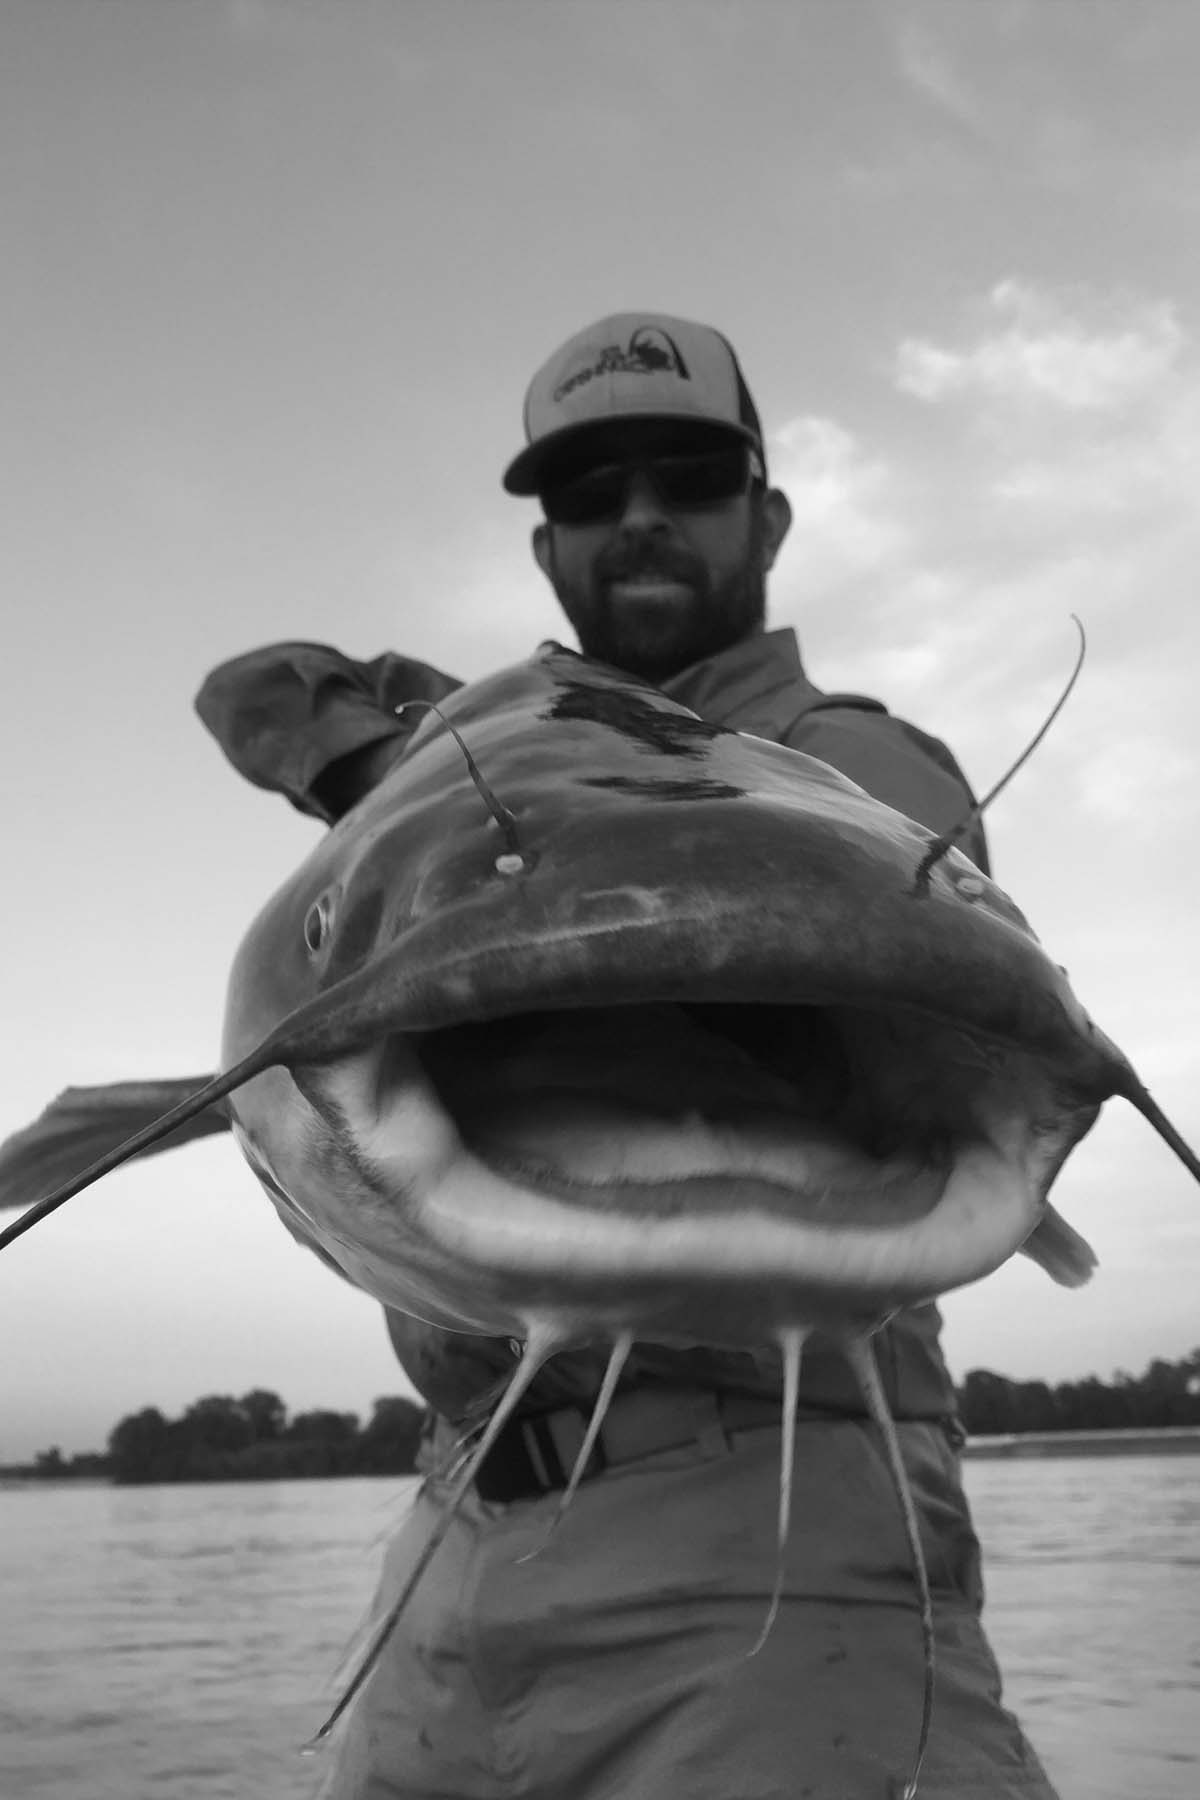 catfish-guide-whisker-seeker-tackle-stl-catfishig-st.-louis-b-w-1.jpg